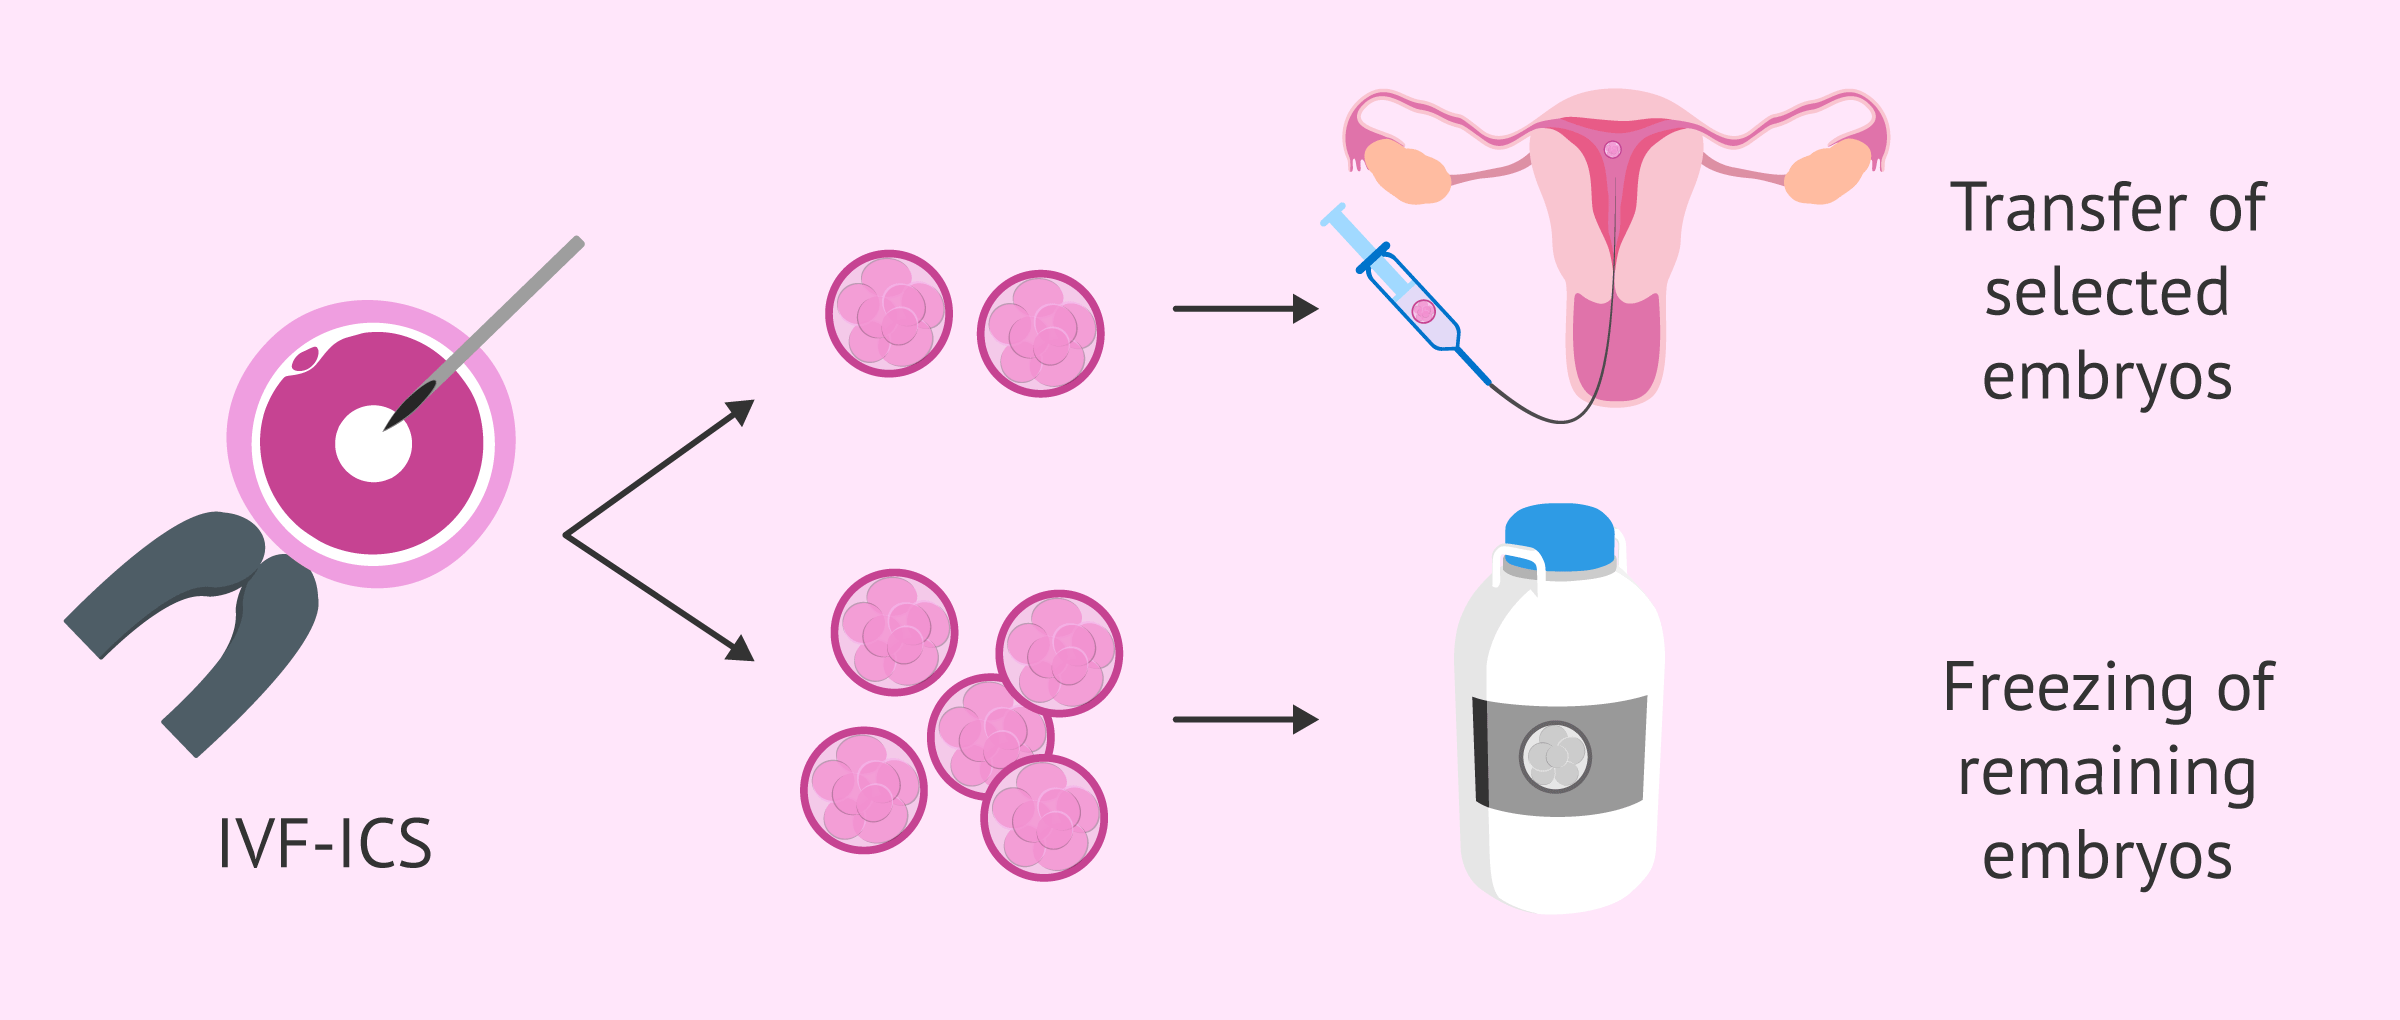 Cryopreservation of remaining embryos